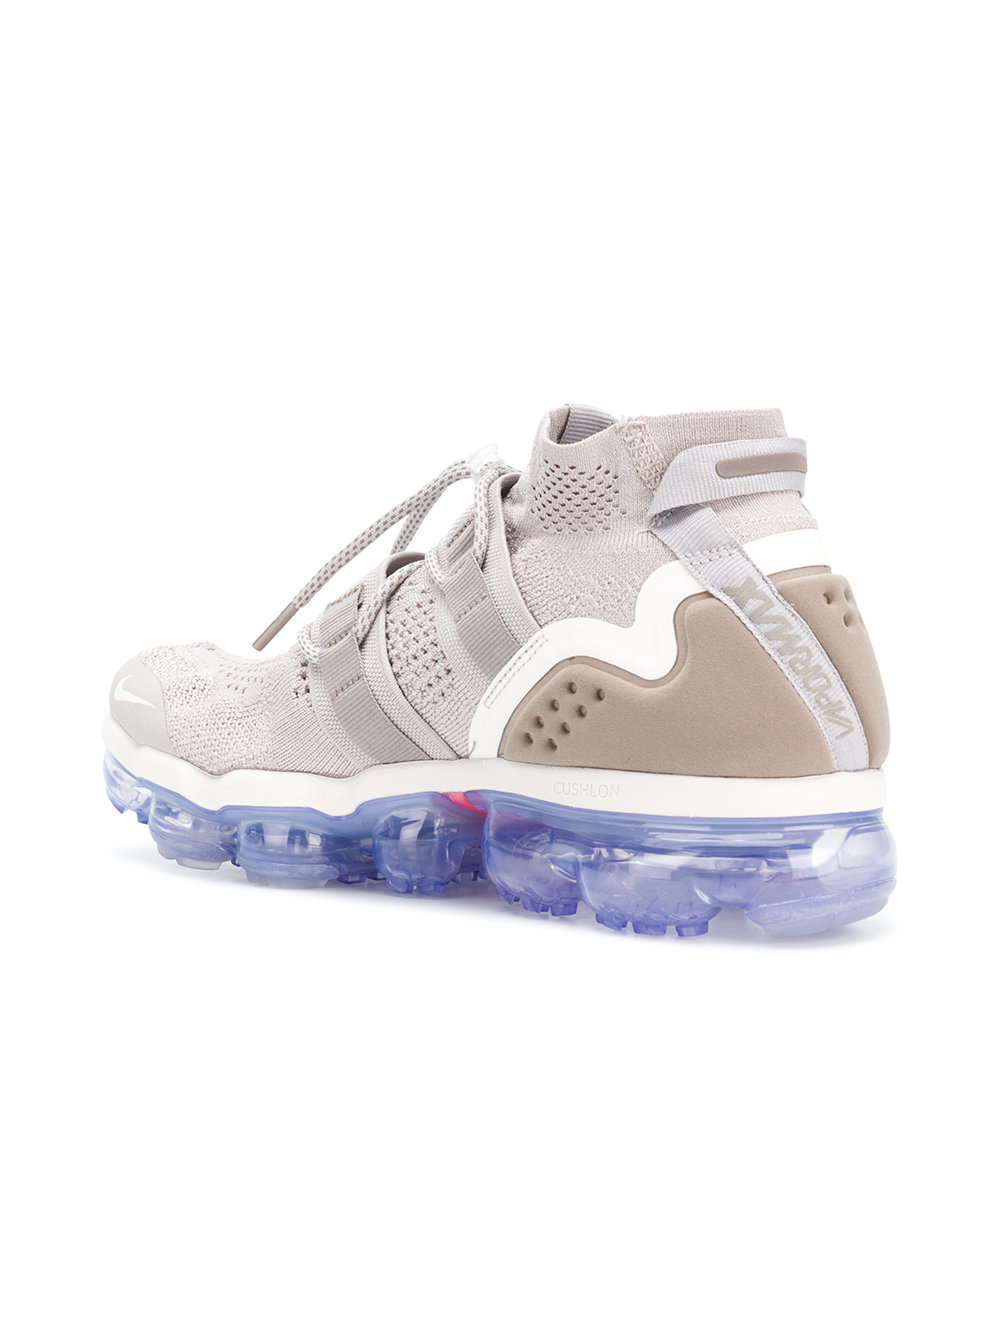 d08aab942a73 Nike Air Vapormax Flyknit Utility Sneakers